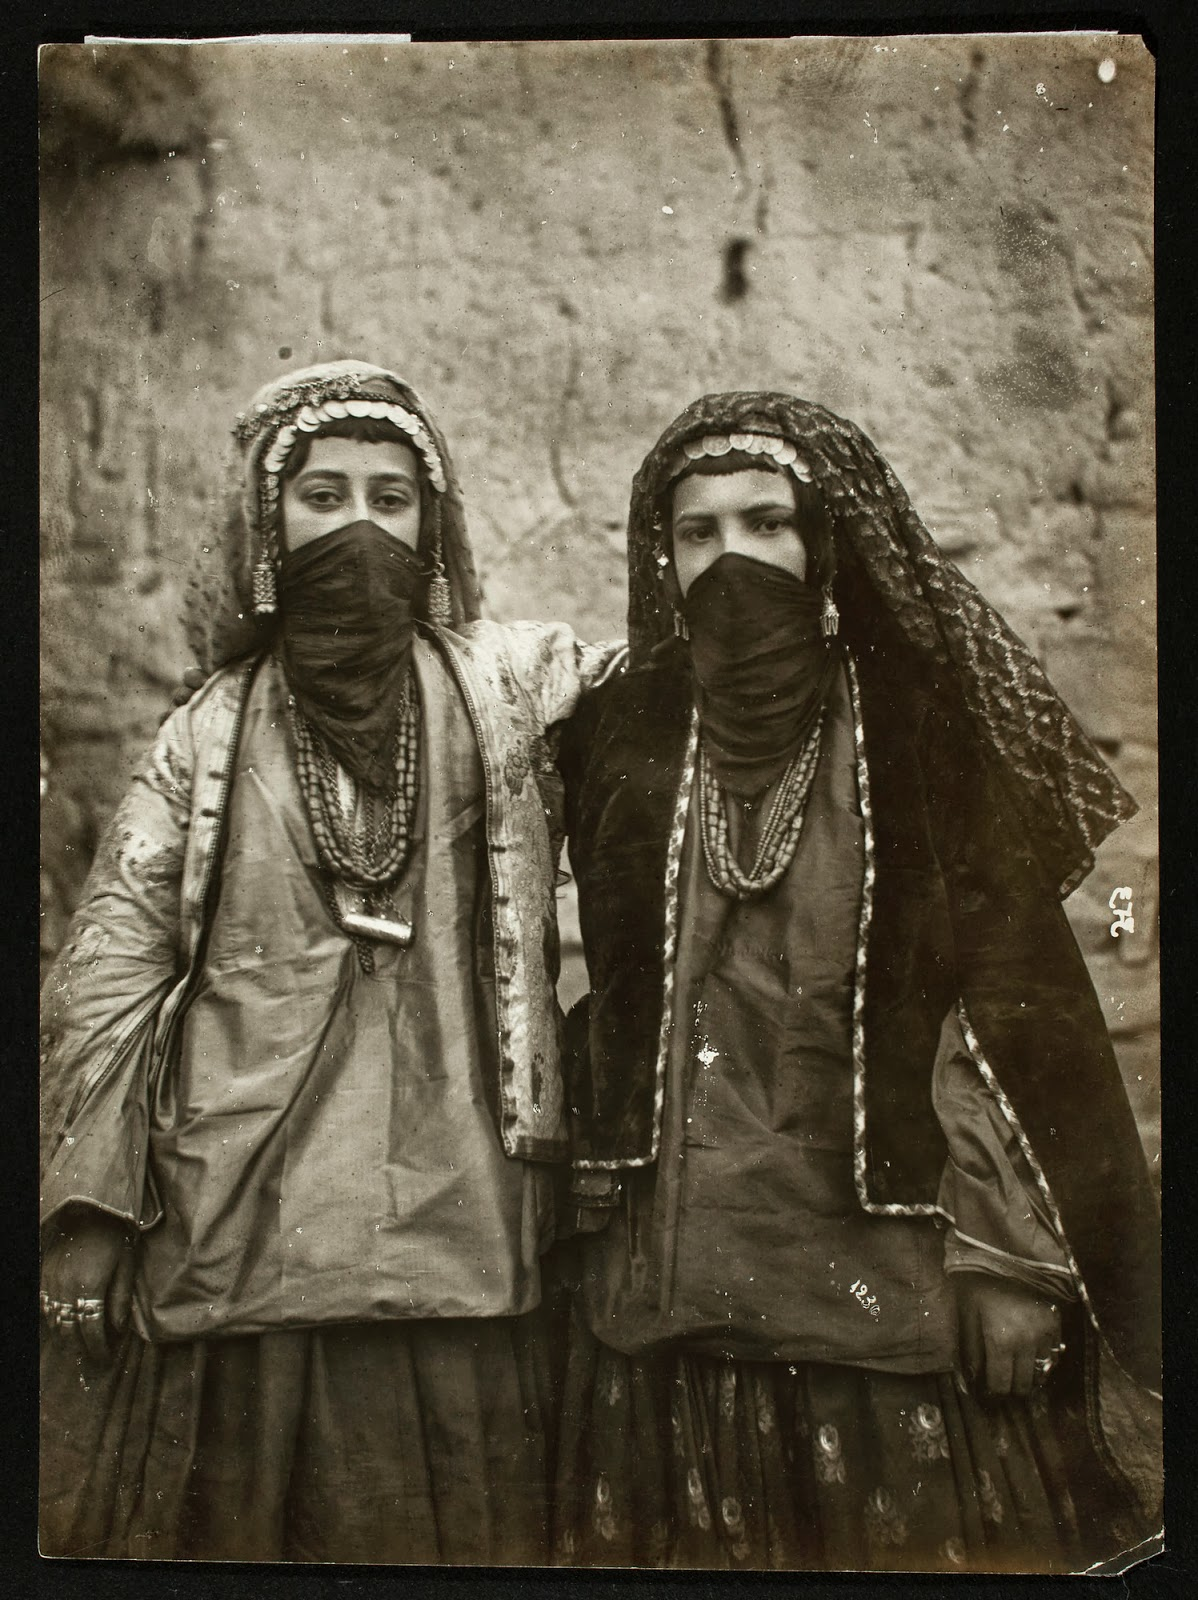 Eshkol HaKofer Pictures of Persia henna in the